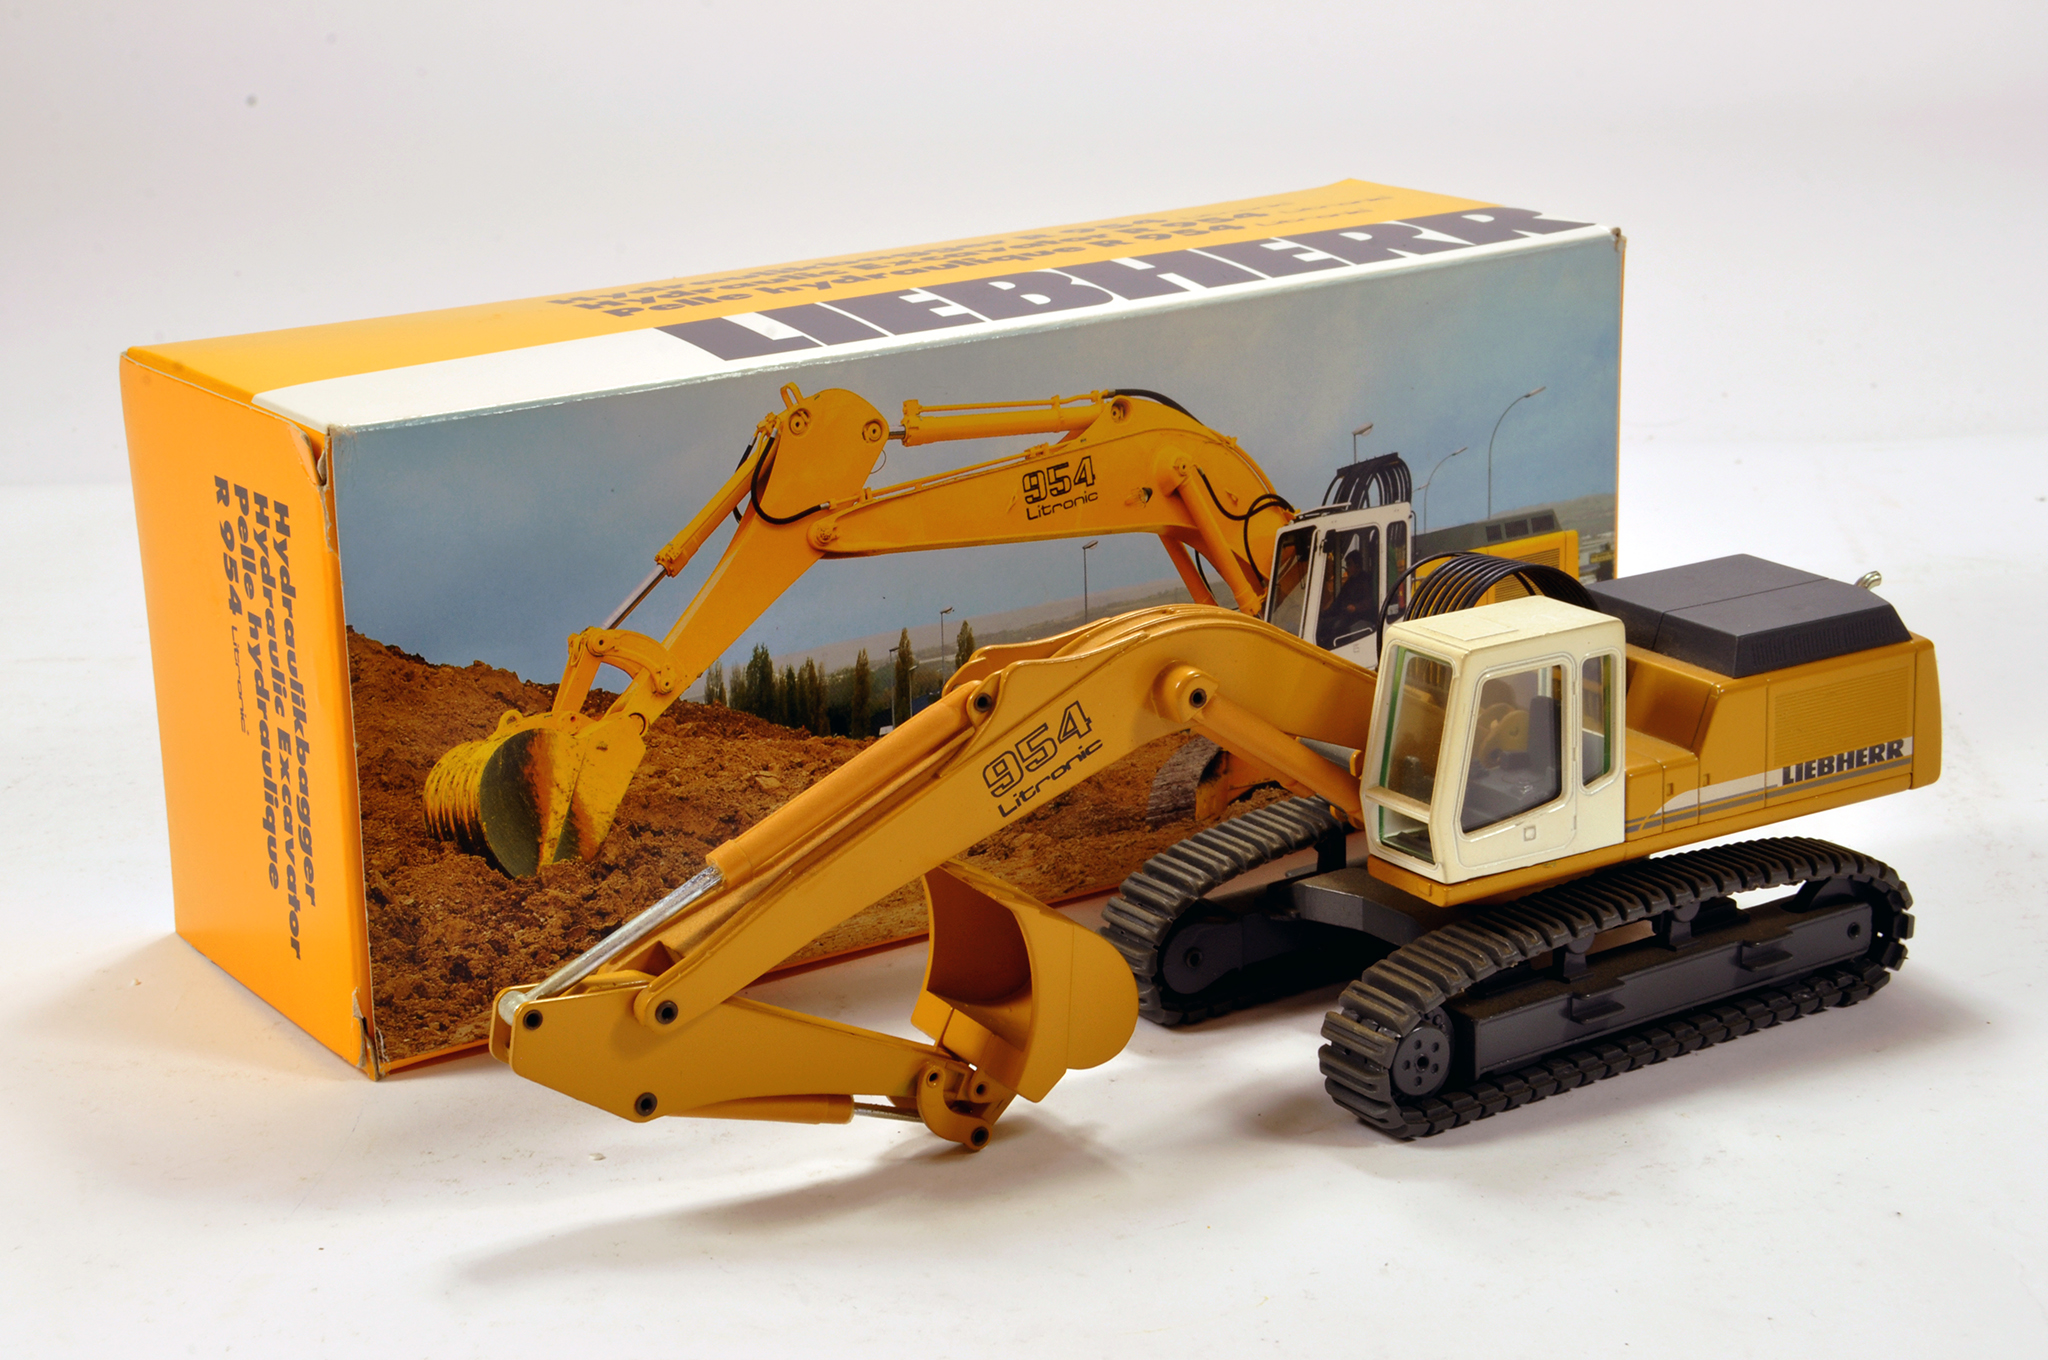 Lot 326 - Conrad 1/50 construction issue comprising Liebherr 954 Tracked Excavator. E to NM.